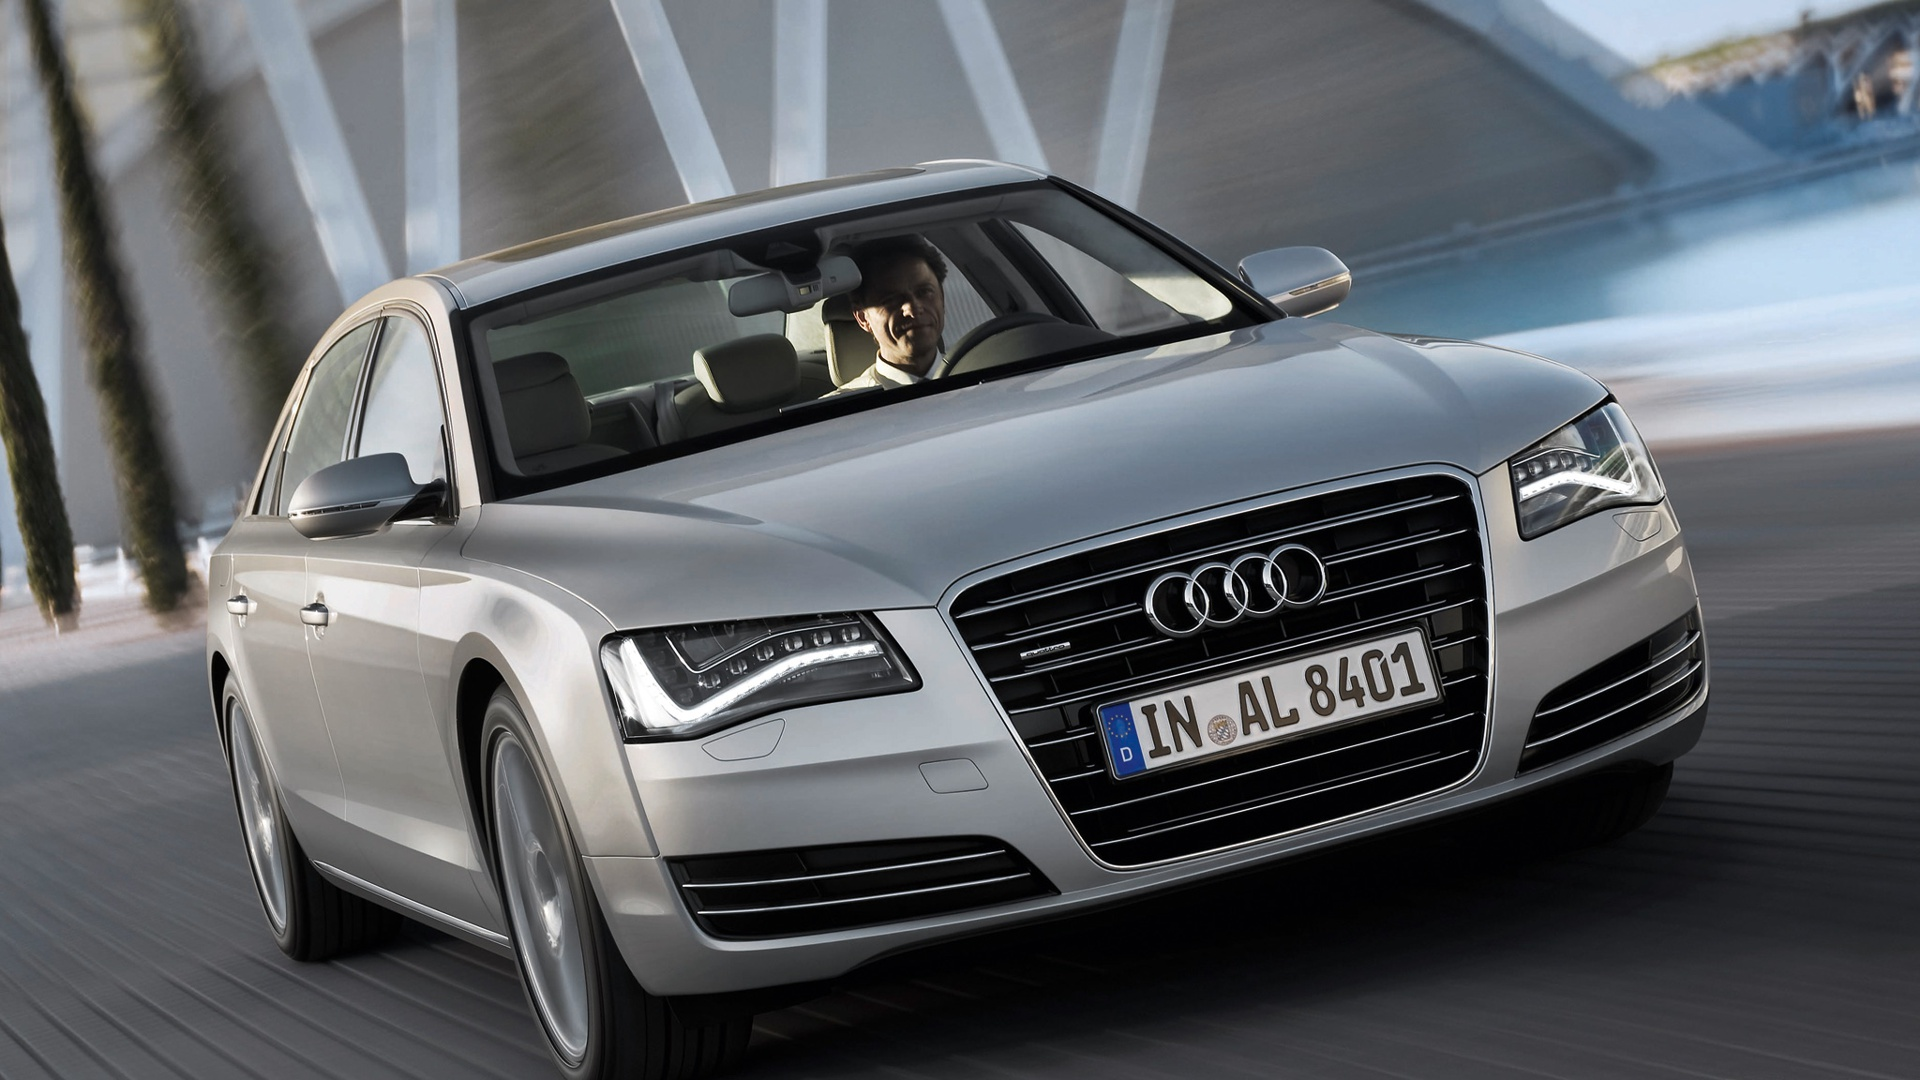 Audi car wallpaper wallpapers for free download about (, 1920x1080